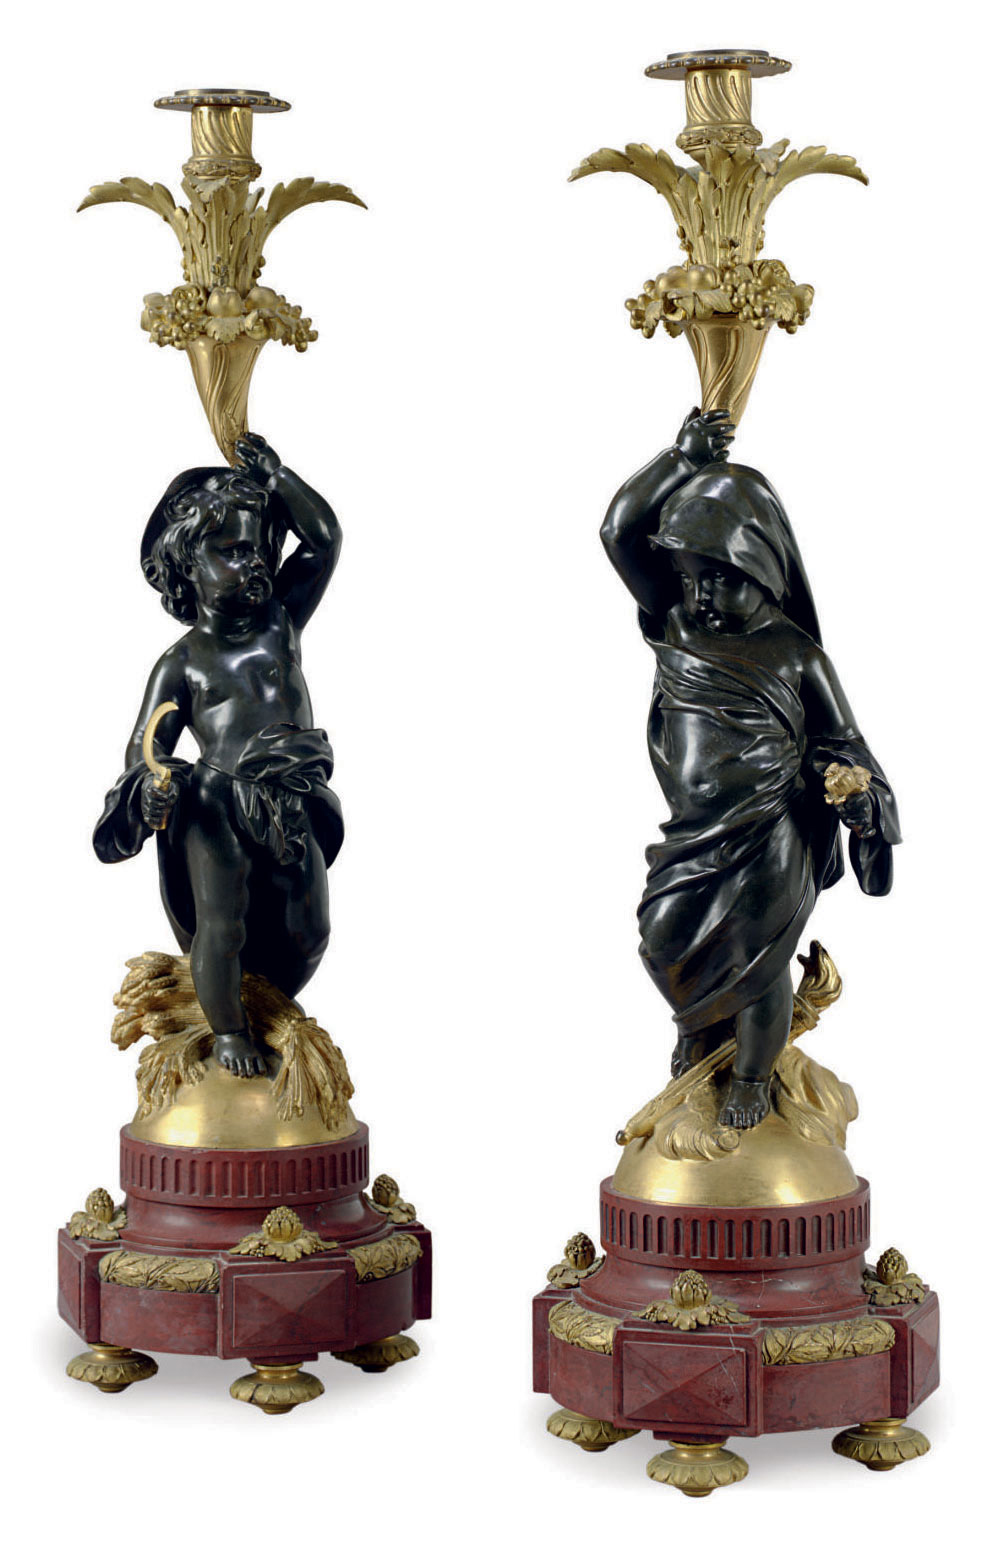 A PAIR OF FRENCH ORMOLU, PATINATED BRONZE AND ROUGE MARBLE FIGURAL CANDLESTICKS, MOUNTED AS LAMPS